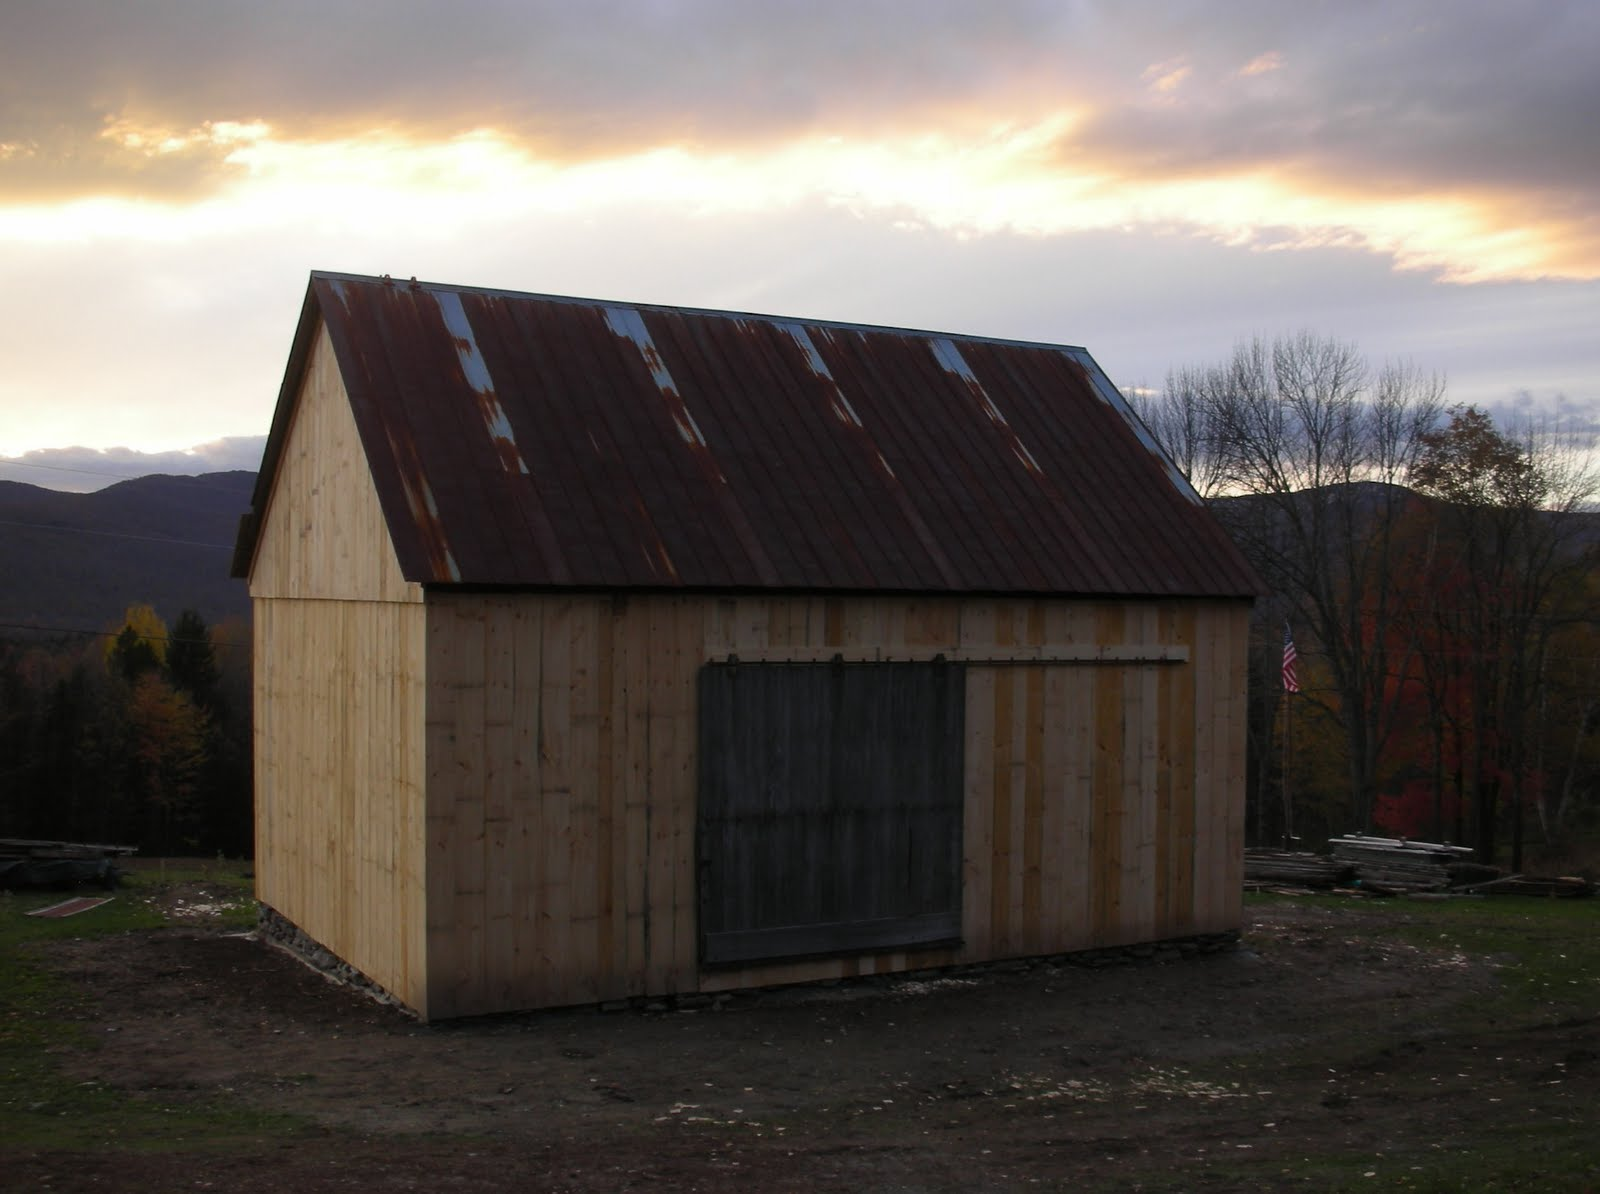 The door was found inside of the barn laying across the middle girts above the stanchion.